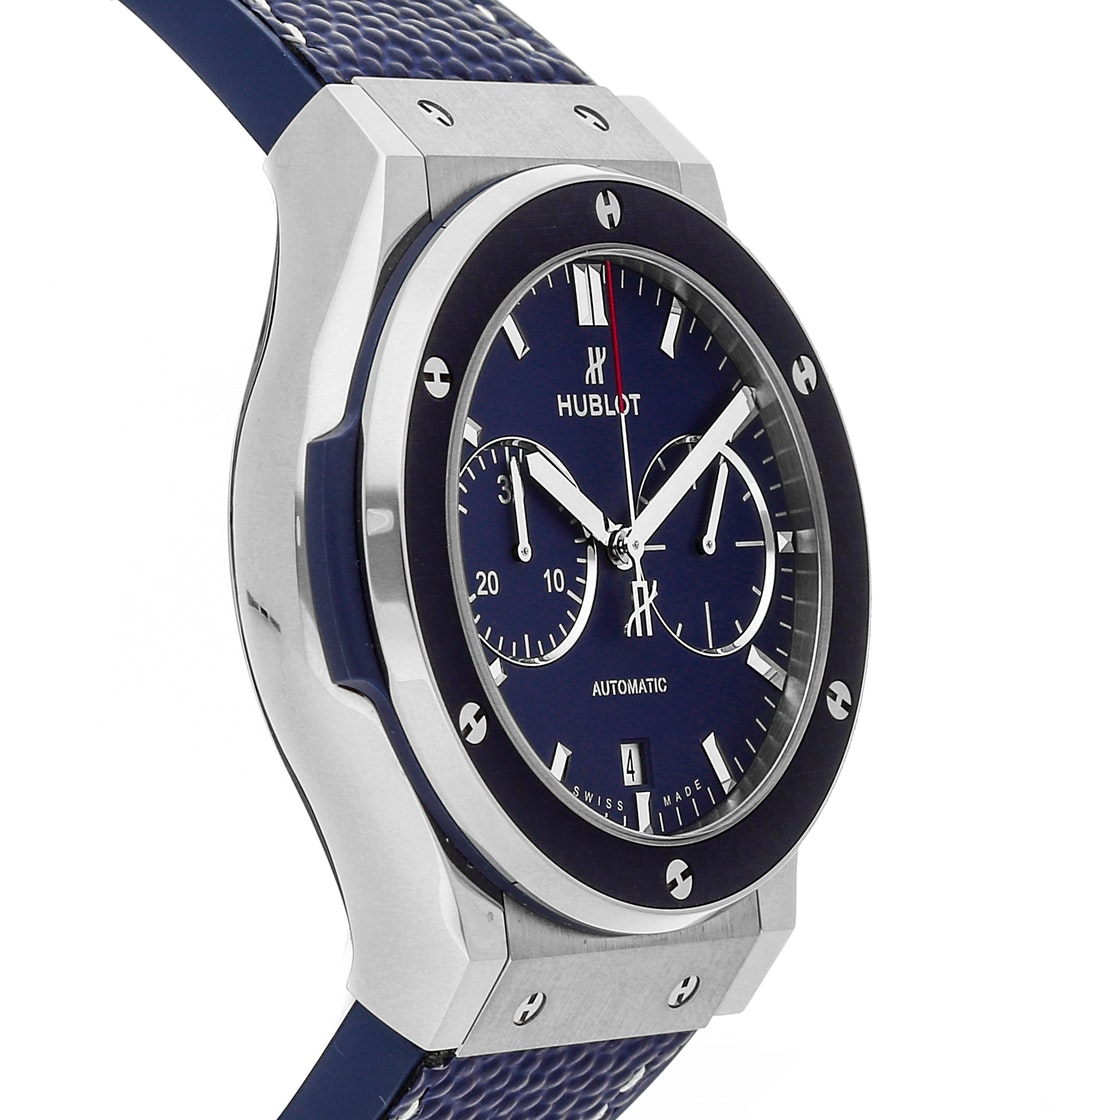 Hublot Classic Fusion New York Giants Limited Edition 521.NQ.5170.VR.NYG17